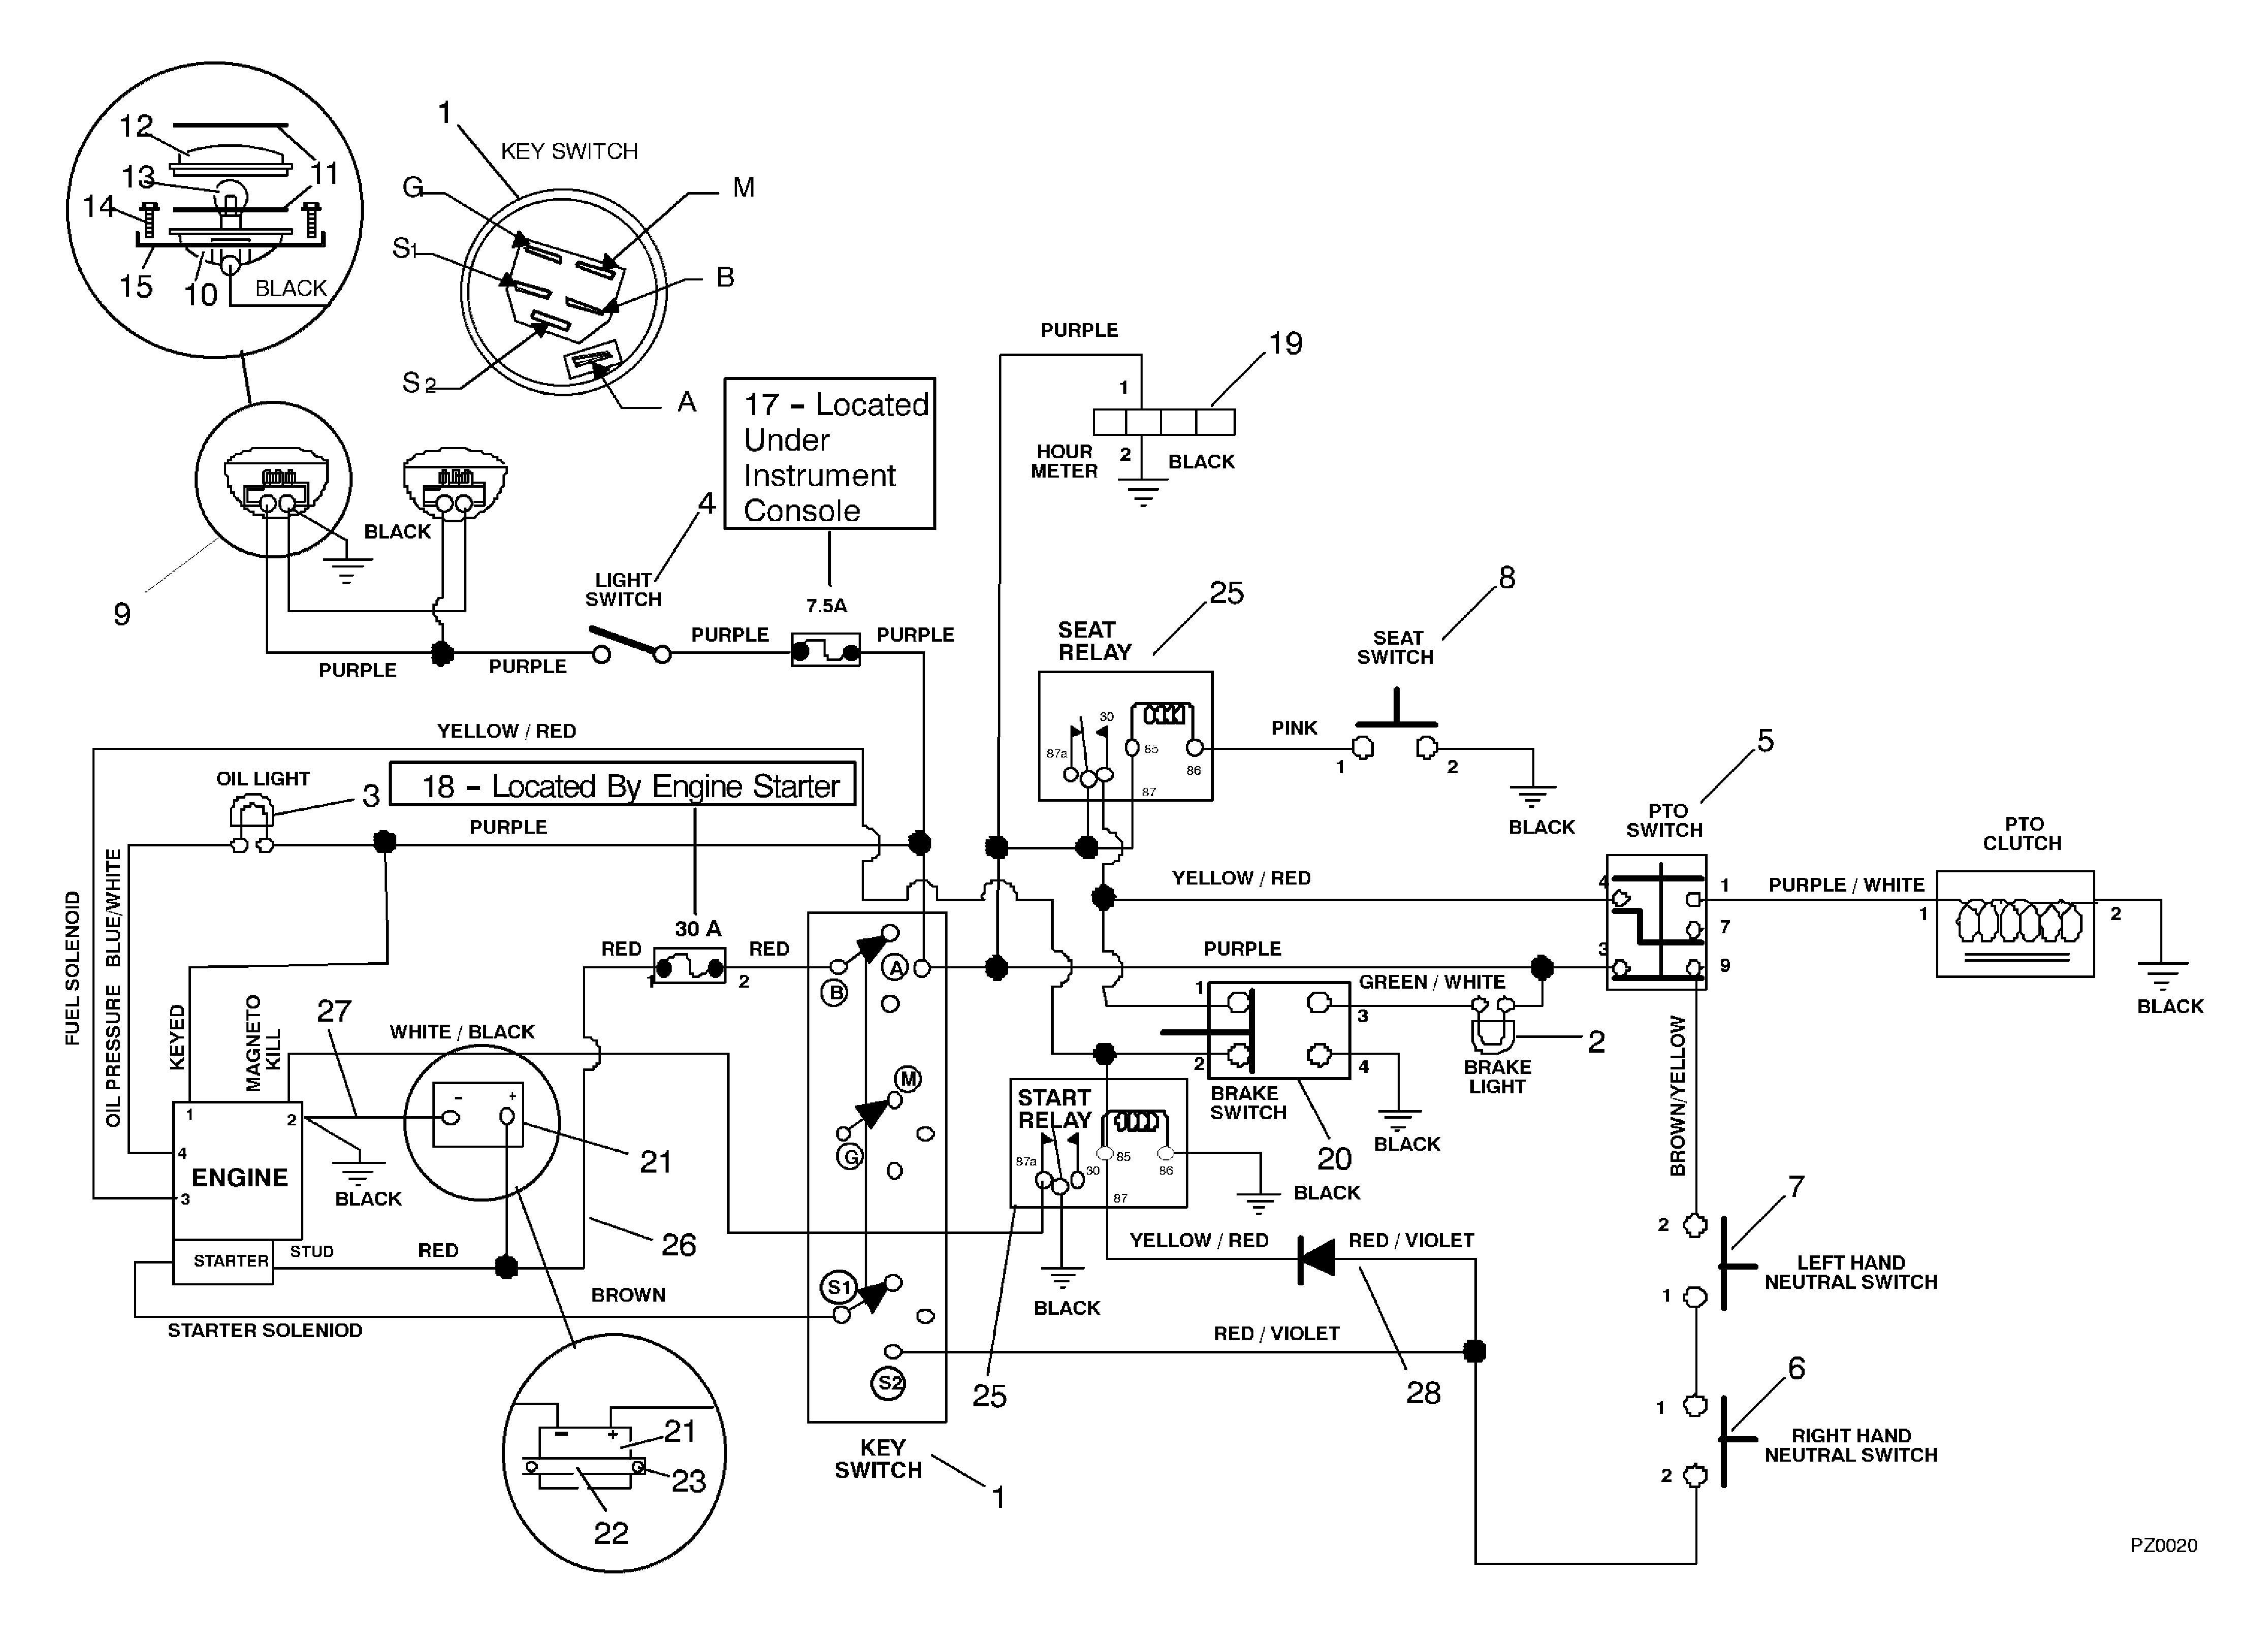 Kohler Command 12 5 Wiring Diagram | Wiring Diagram - Kohler Engine Wiring Diagram